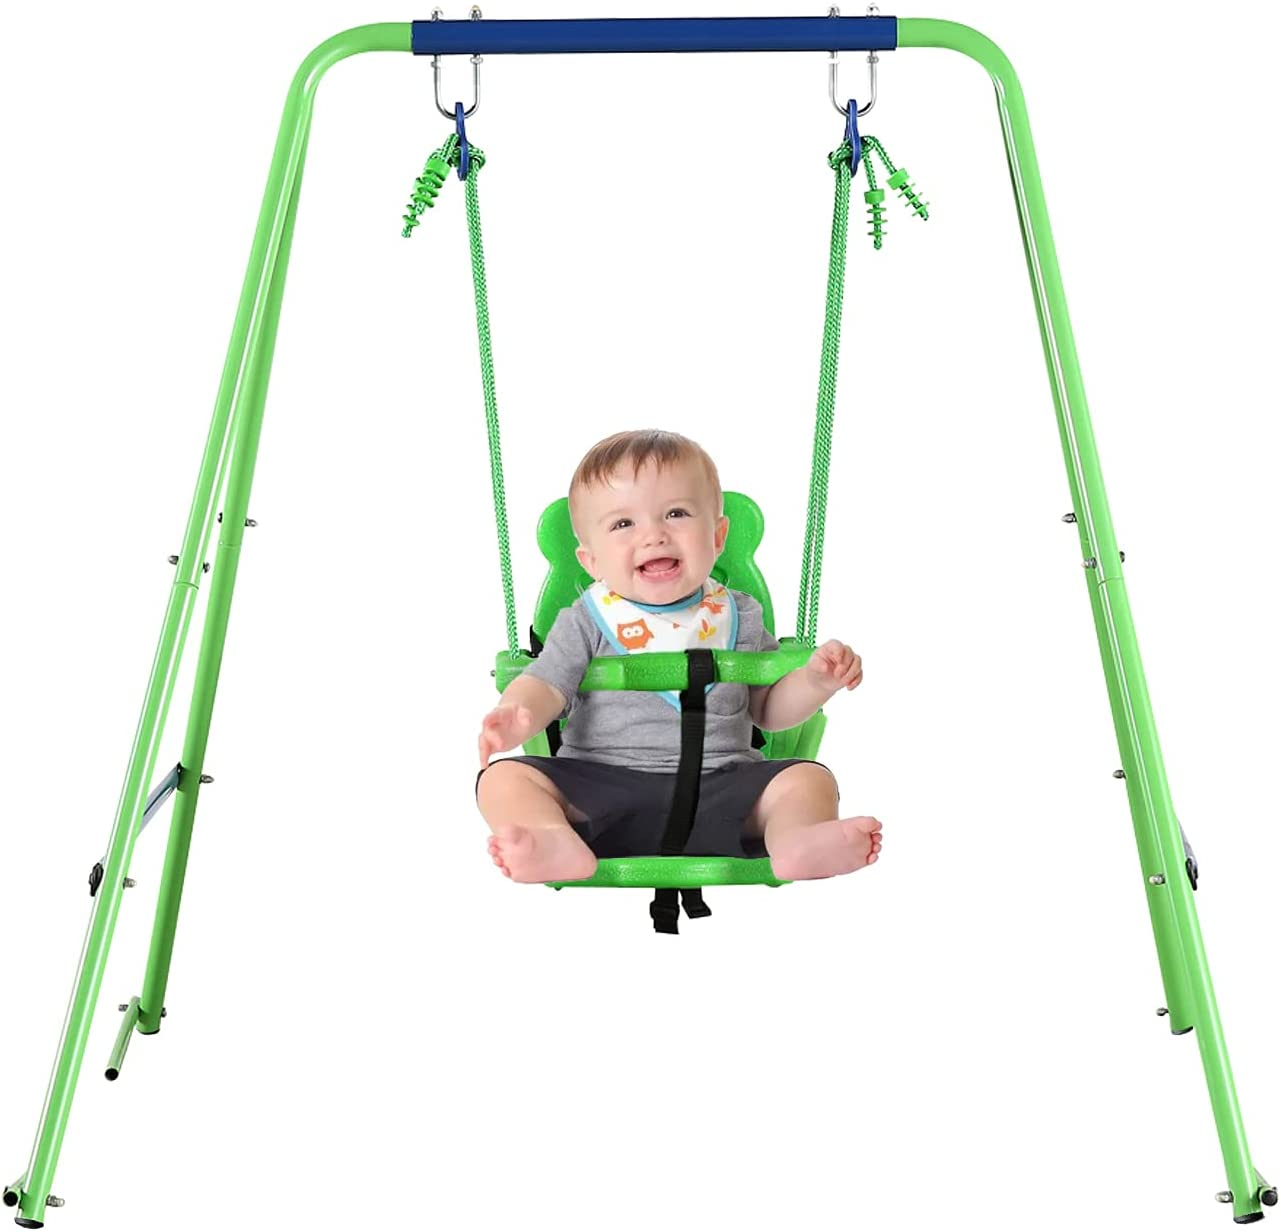 YACOOL Toddler Swing Set Outdoor with Metal Seat Ranking TOP19 Brand Cheap Sale Venue Belts